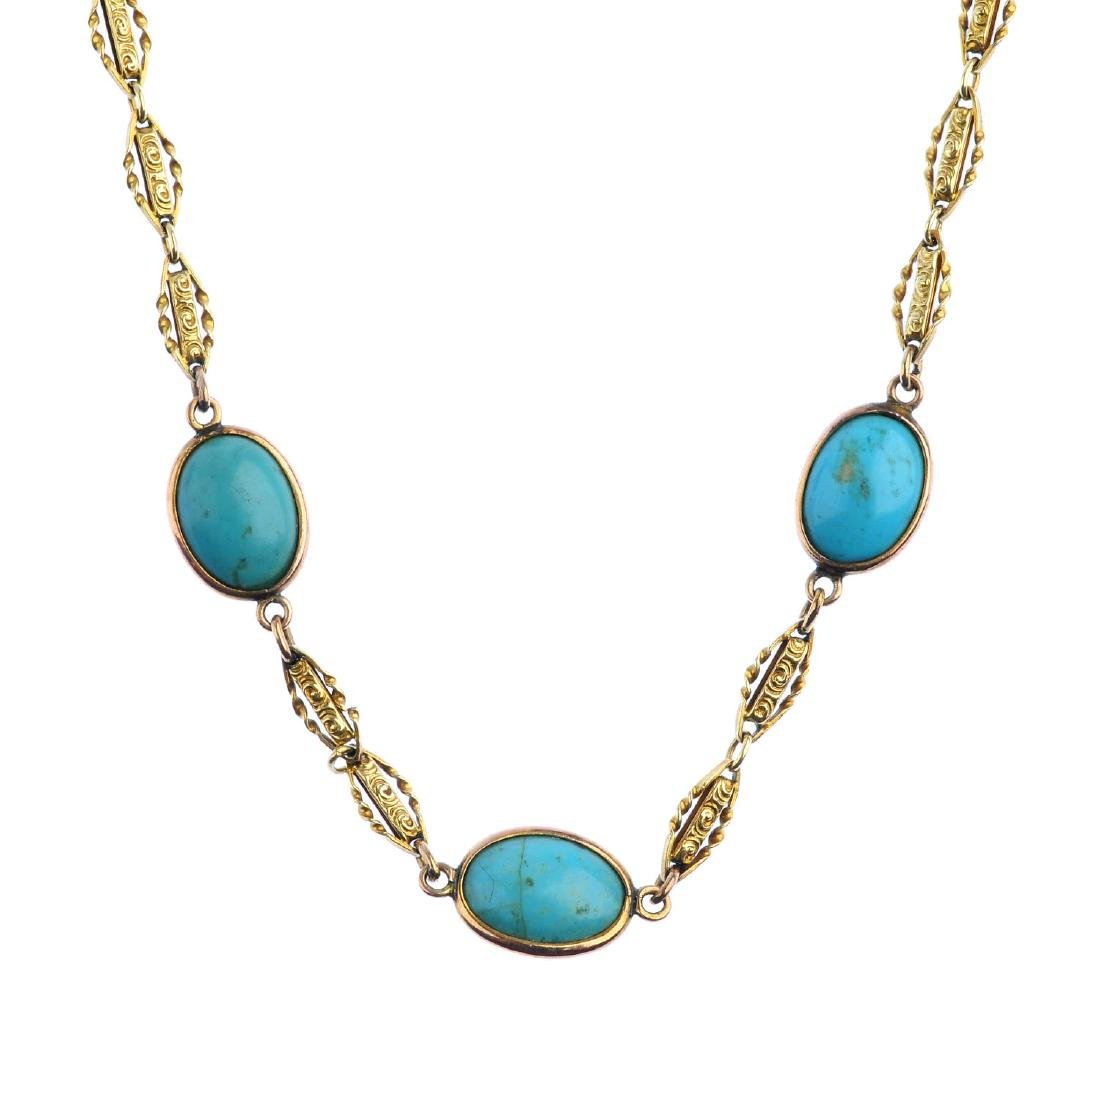 A turquoise necklace. Designed as three oval turquoise